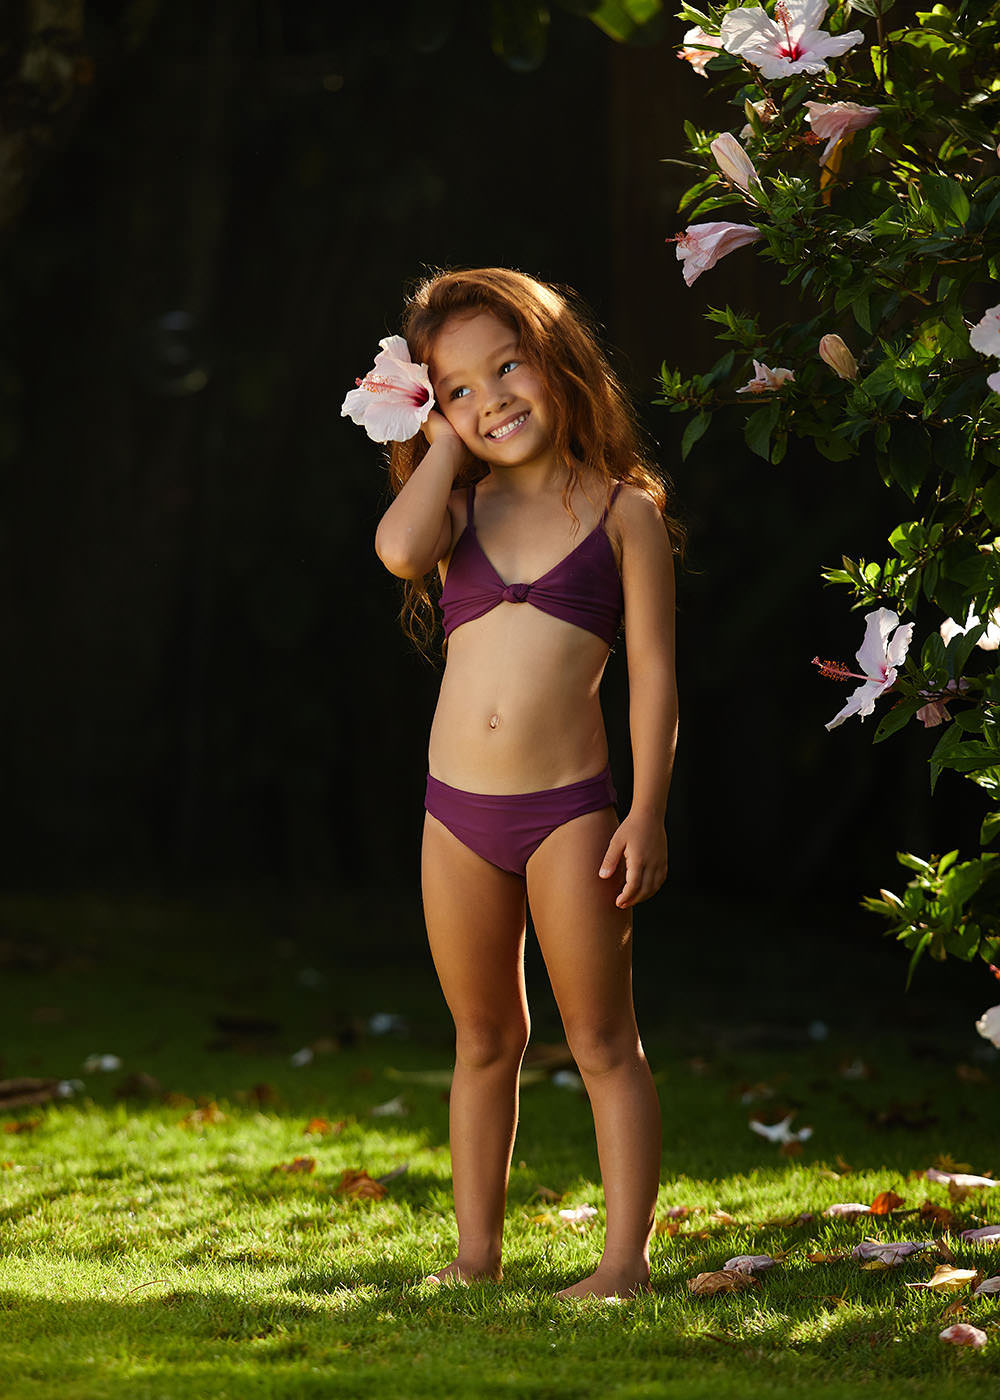 Mikoh Mini wearing the Bella Top and Makapuu Bottom